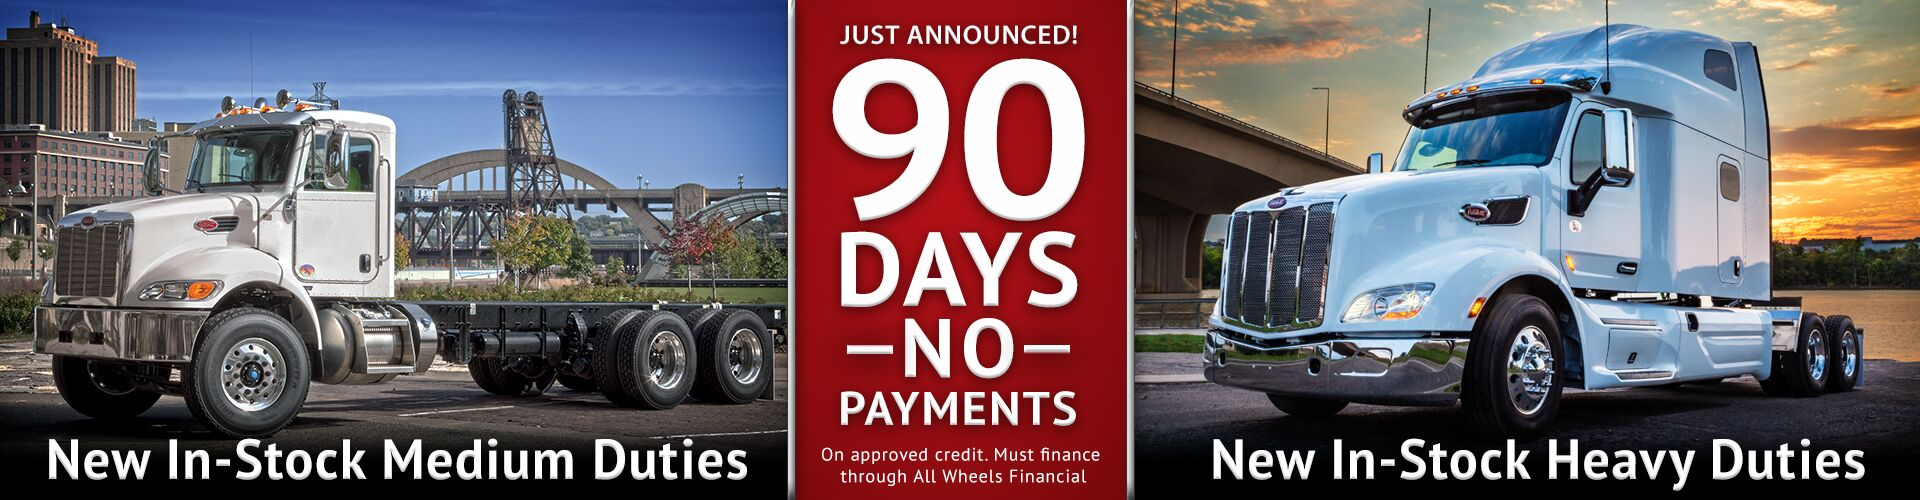 90 Days No Payments on New In-Stock Trucks